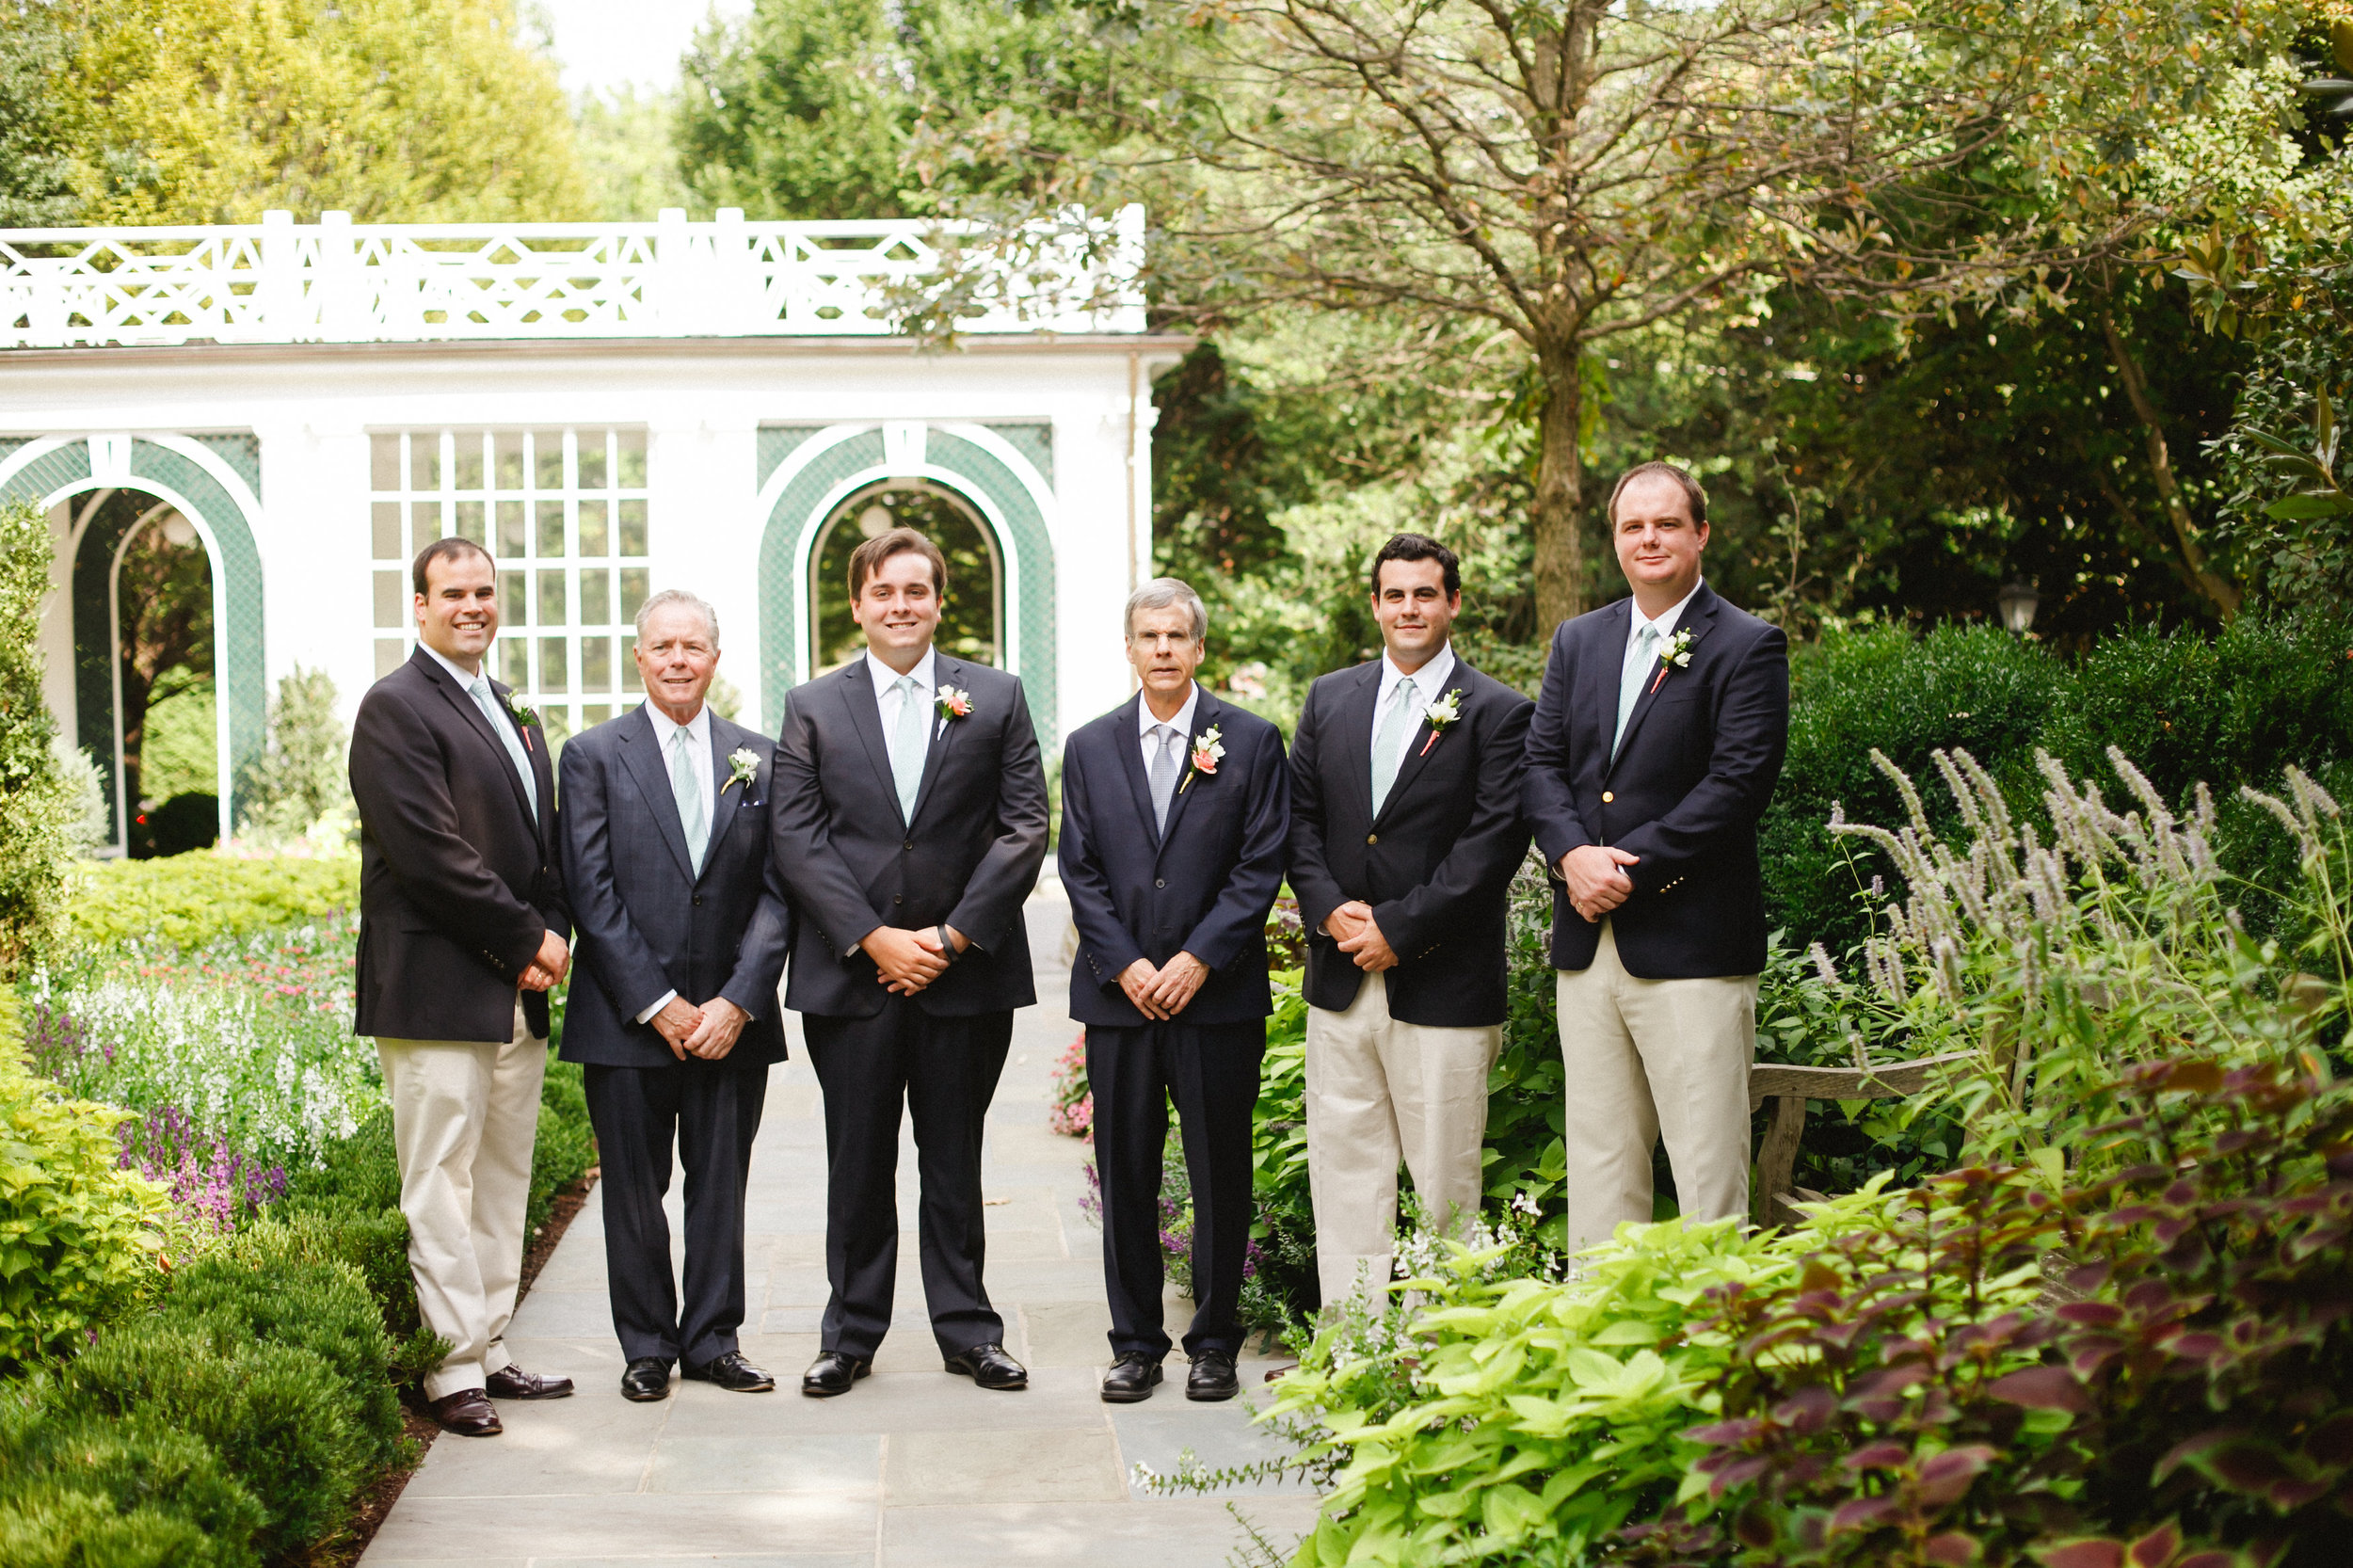 Vness-Photography-Chevy-Chase-Country-Club-A&R-Wedding-317.jpg